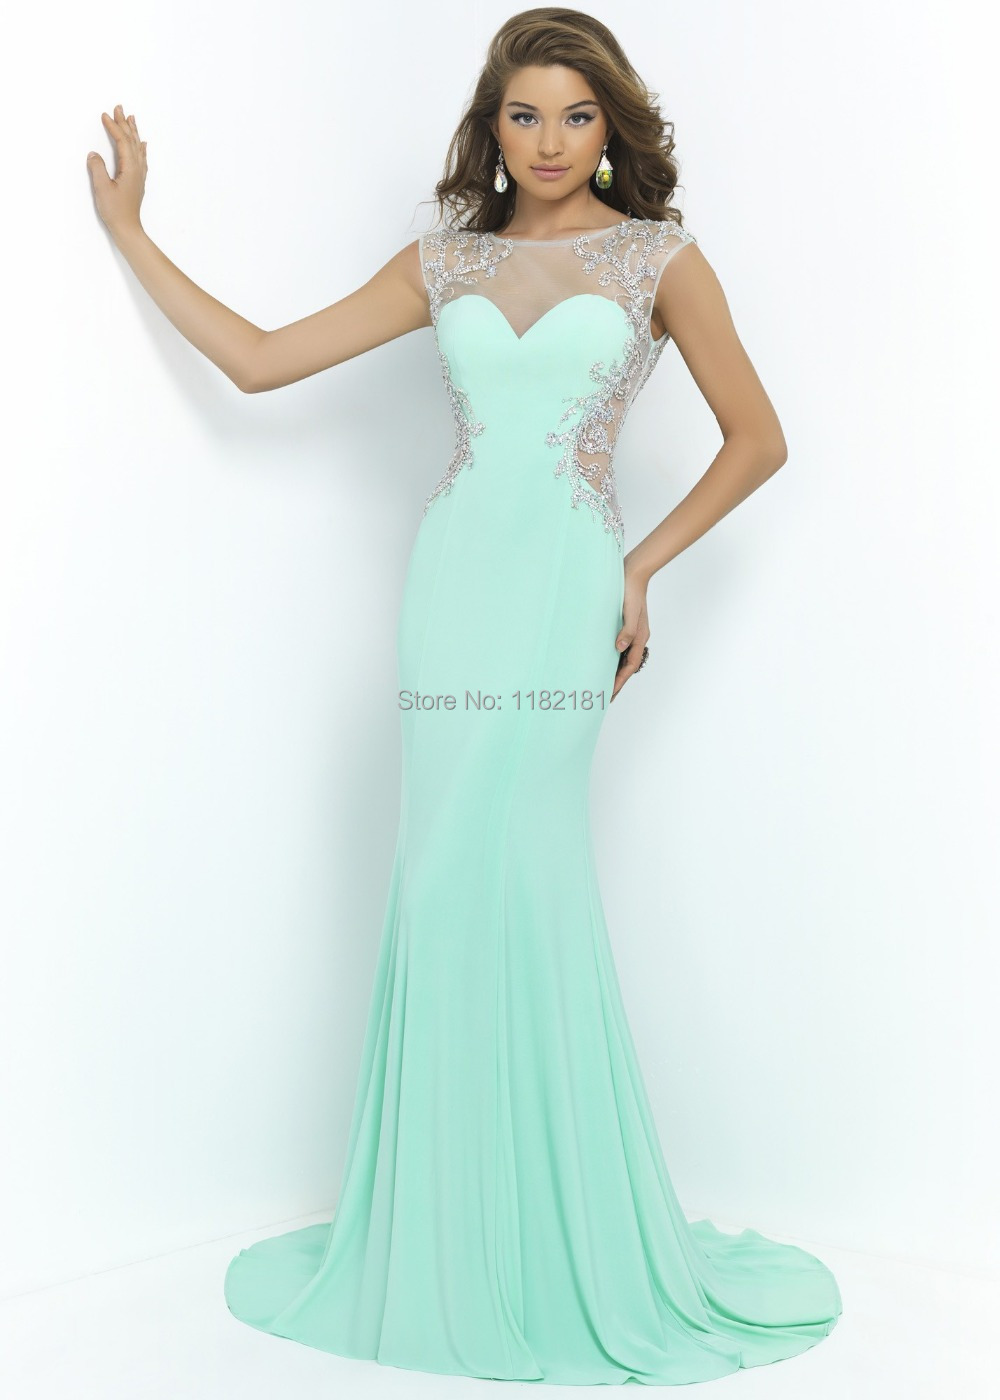 Cap Sleeves Open Back Mint Prom Dress Mermaid Sexy Long Evening Gowns Beaded 2015 Custom Made